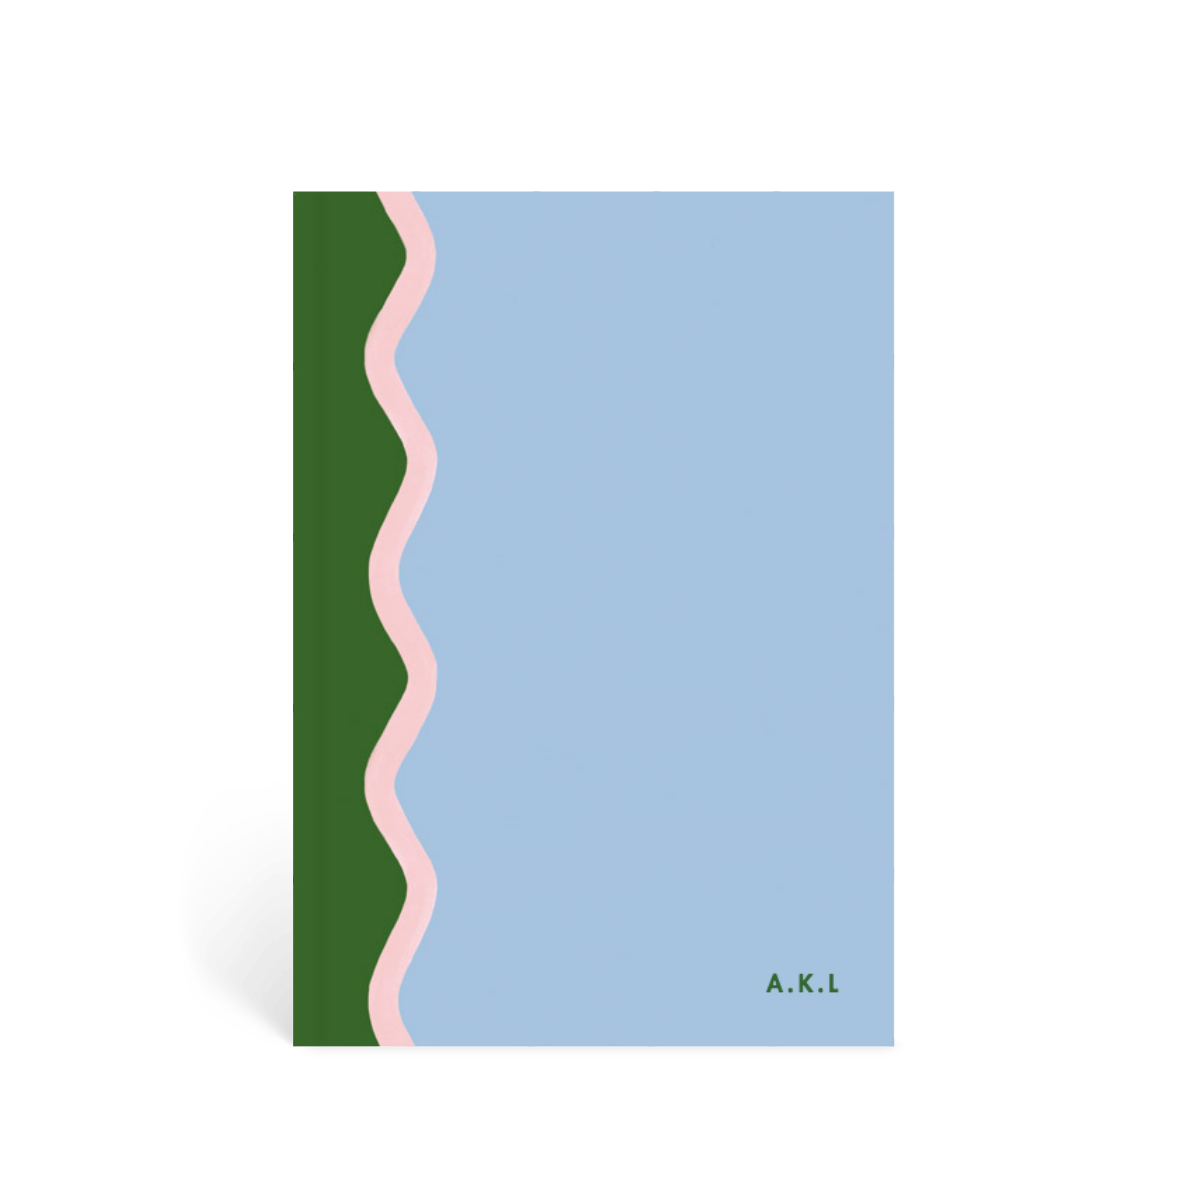 Https%3a%2f%2fwww.papier.com%2fproduct image%2f75317%2f25%2fscallop spine 17650 front 1585308053.png?ixlib=rb 1.1